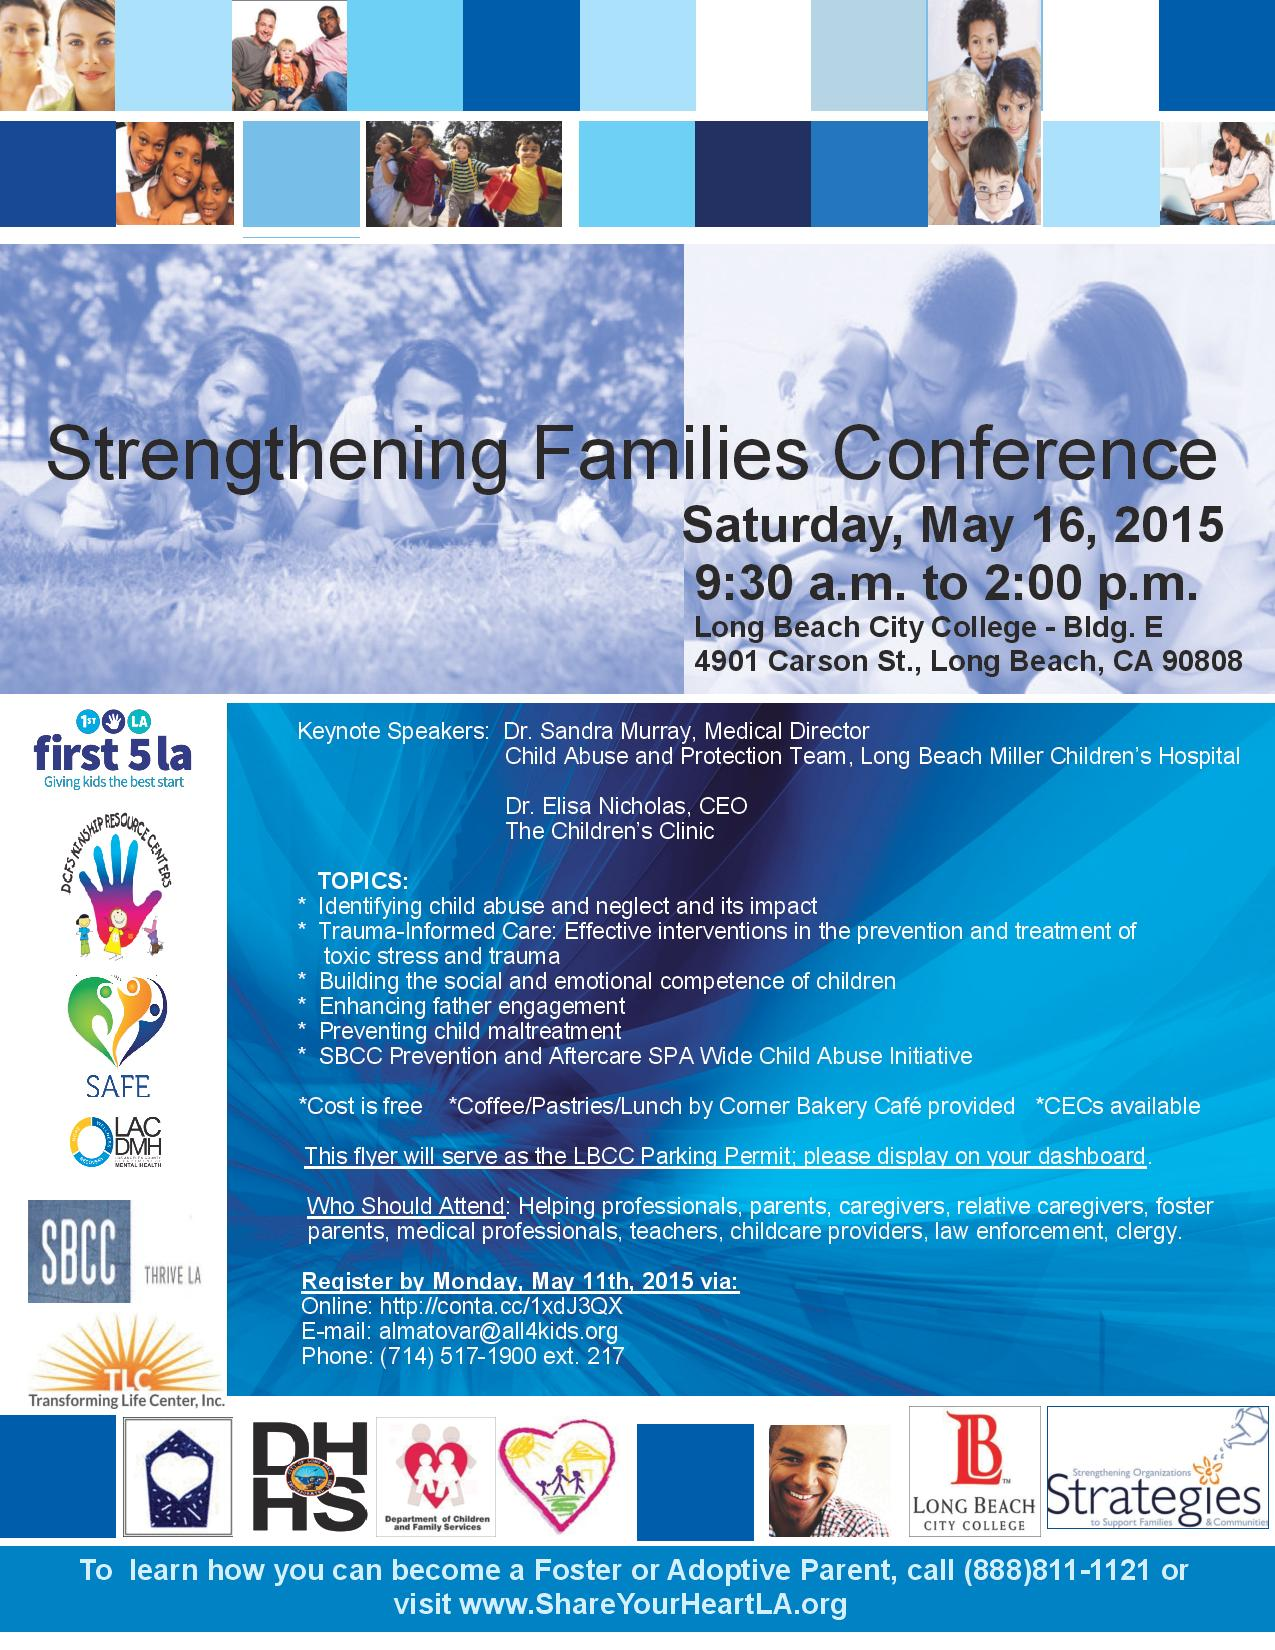 Strengthening Families Conference Invitation_May 16 2015-page-001